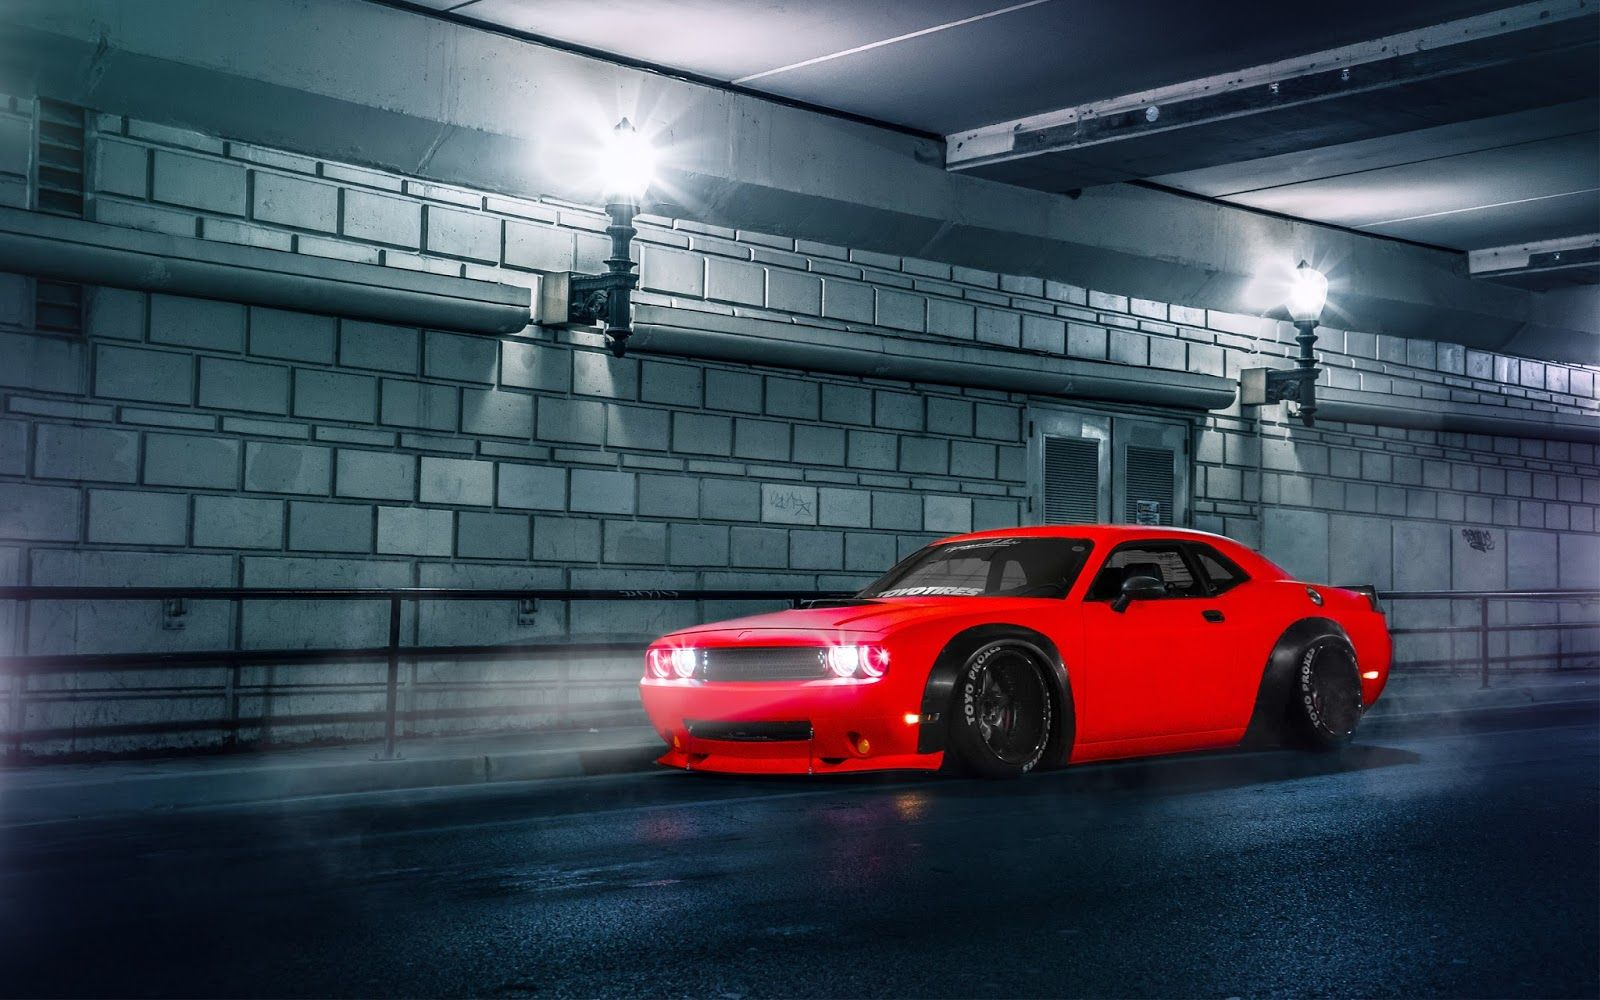 Car car dodge challenger latest car wallpaper fullycoolpix